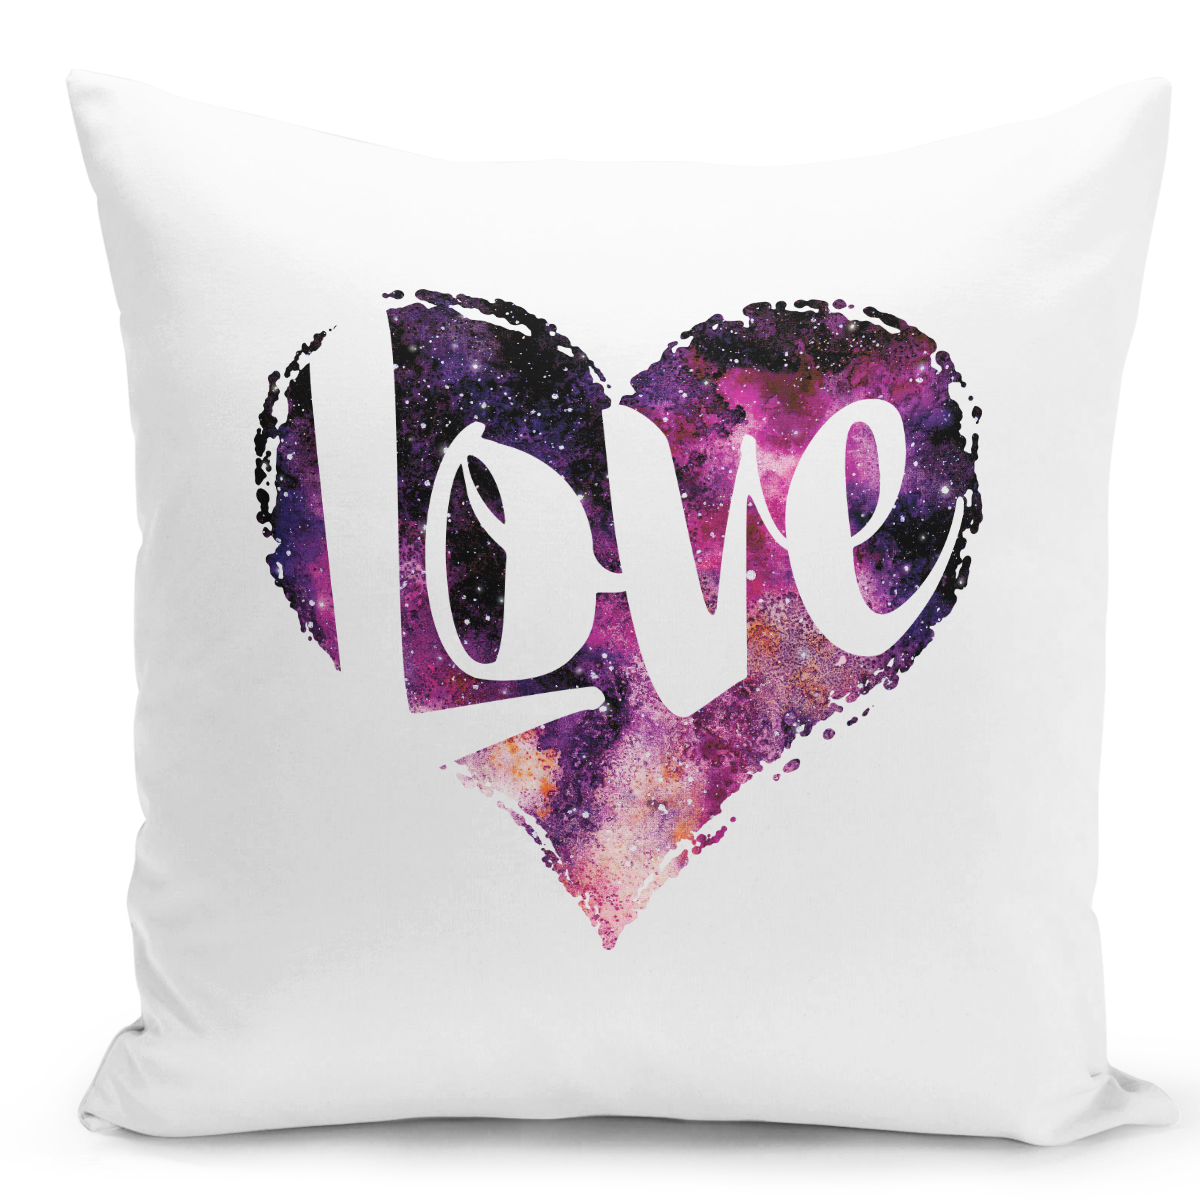 White-Throw-Pillow-Love-Heart-Galaxy-And-Stars-Astronomy-Theme---Pure-White-Printed-16-x-16-inch-Square-Home-Decor-Couch-Pillow-